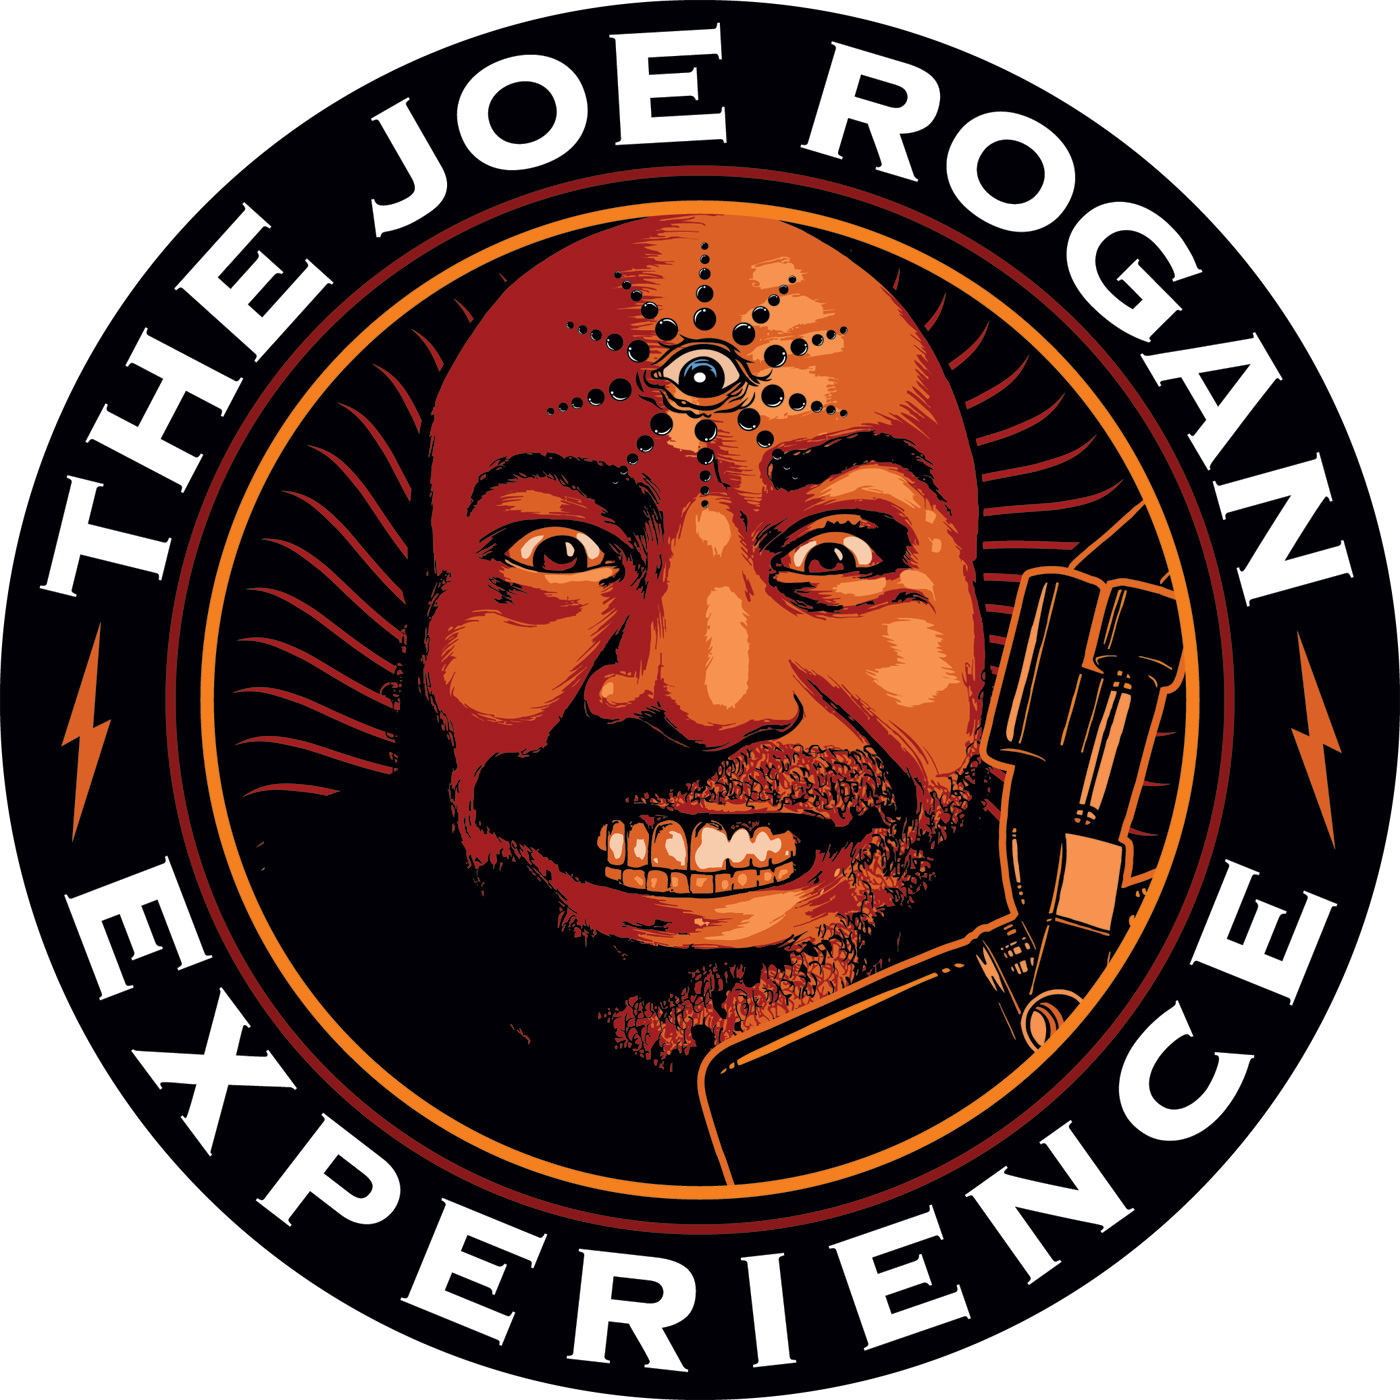 The Joe Rogan Experience PODCAST #154 - Sam Tripoli, Brian Redban